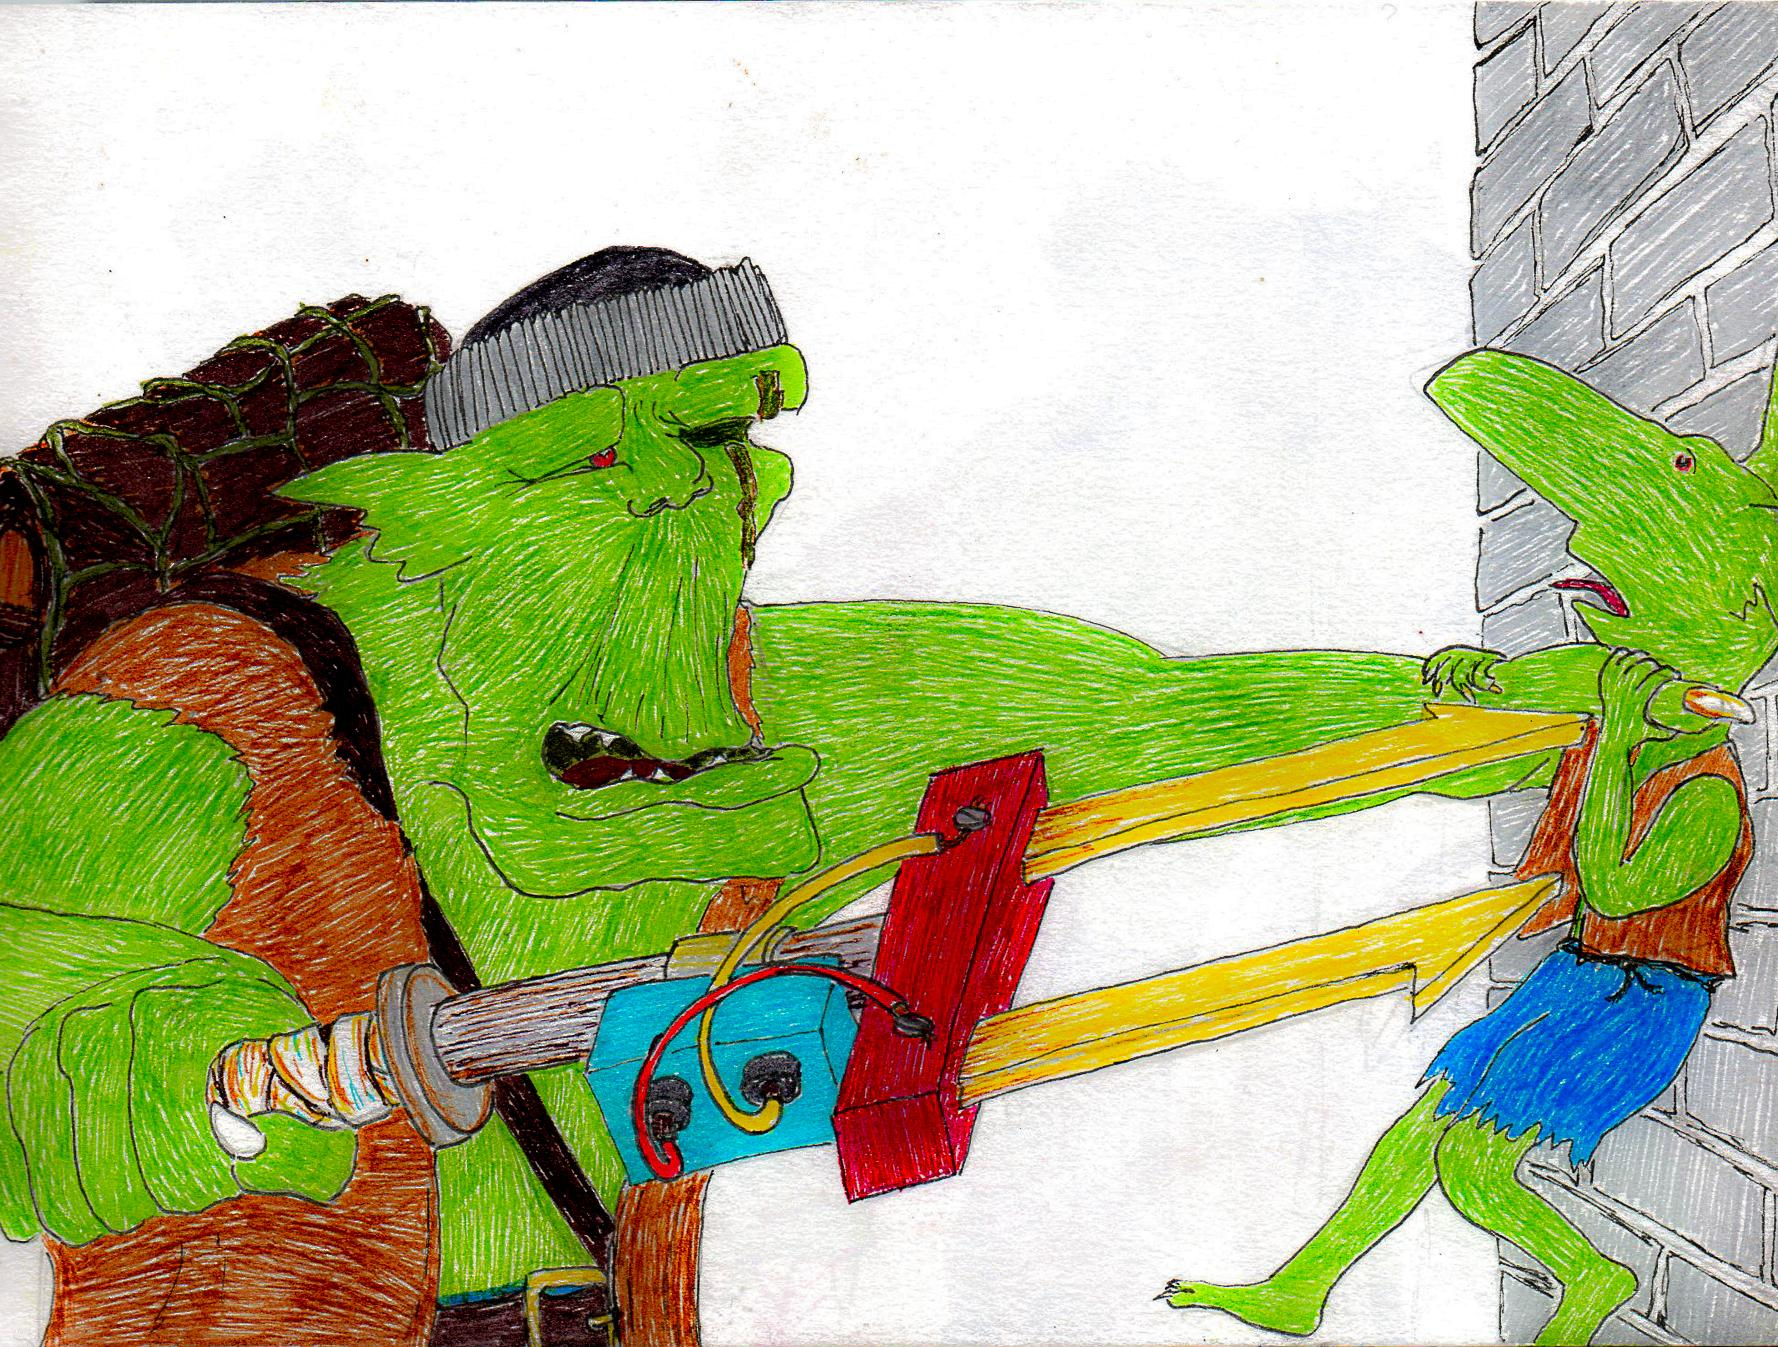 Drawing, Graphic, Grots, Humour, Illustration, Orks, Sketch